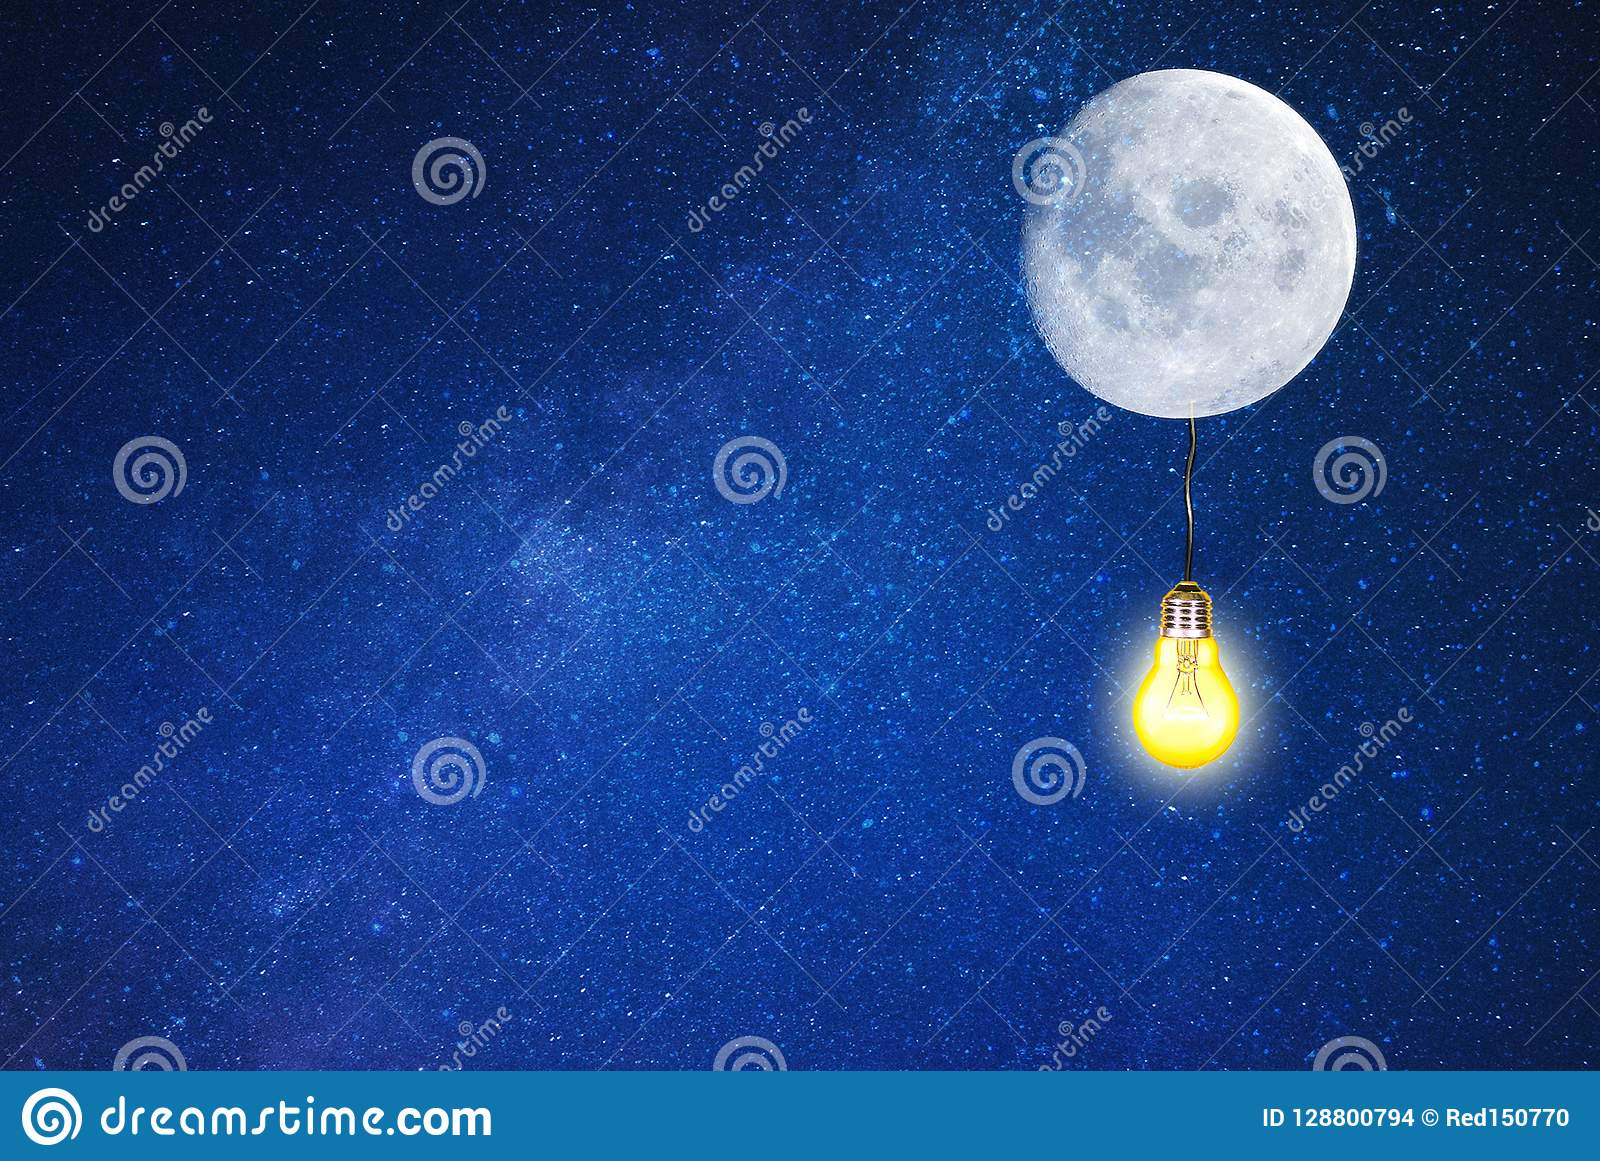 Galaxy Lighting Moon Light In Galaxy Lighting Moon Stock Photo Image Of Ighting